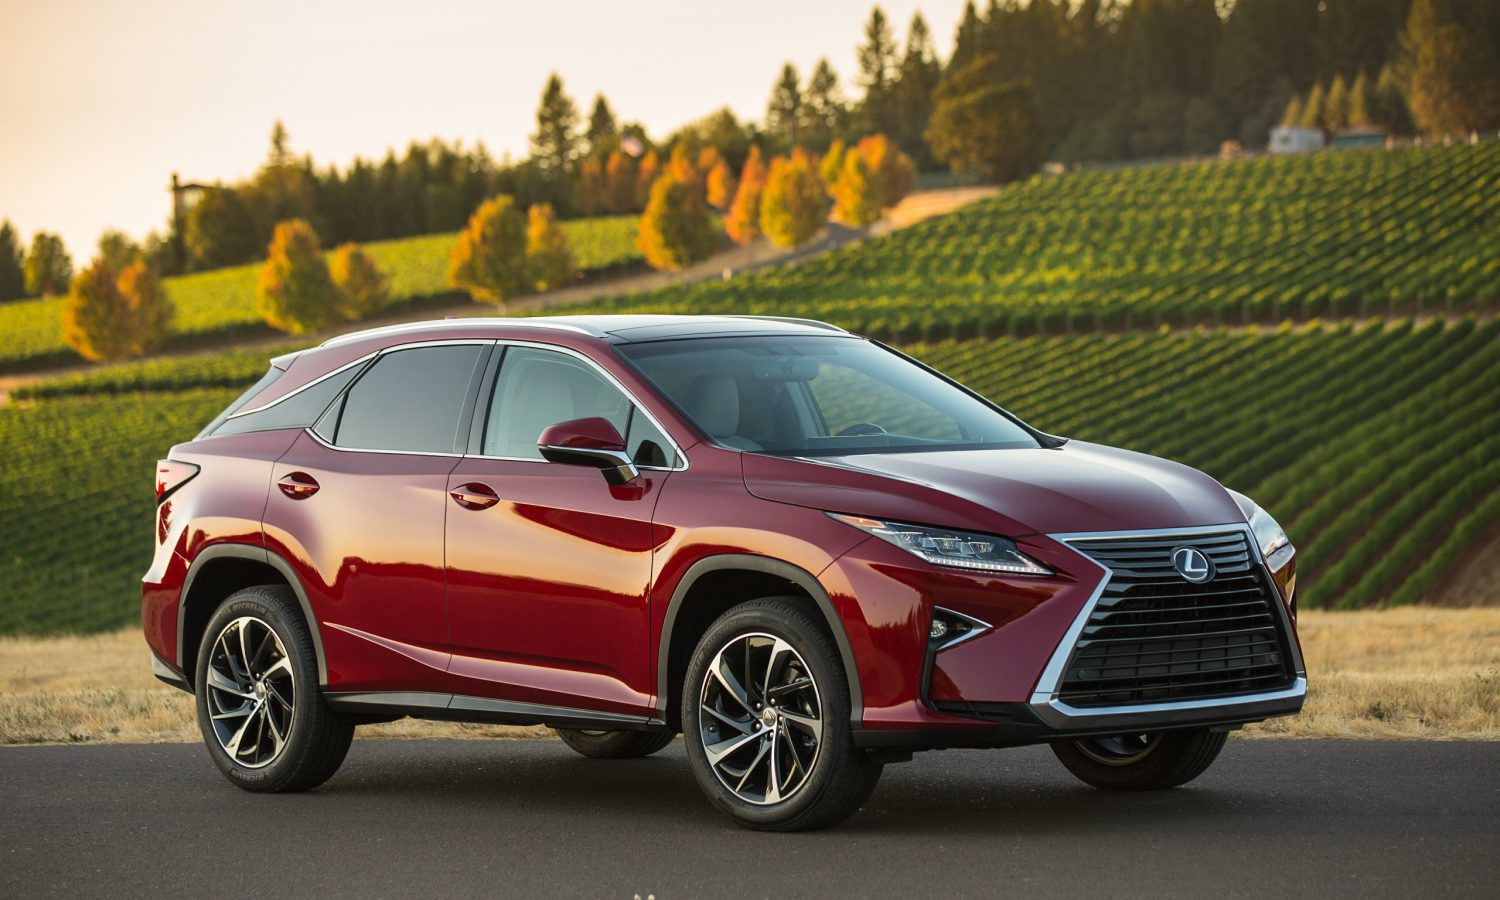 2016 Lexus RX Redefines Segment with Style, Ride Comfort and Luxury Utility